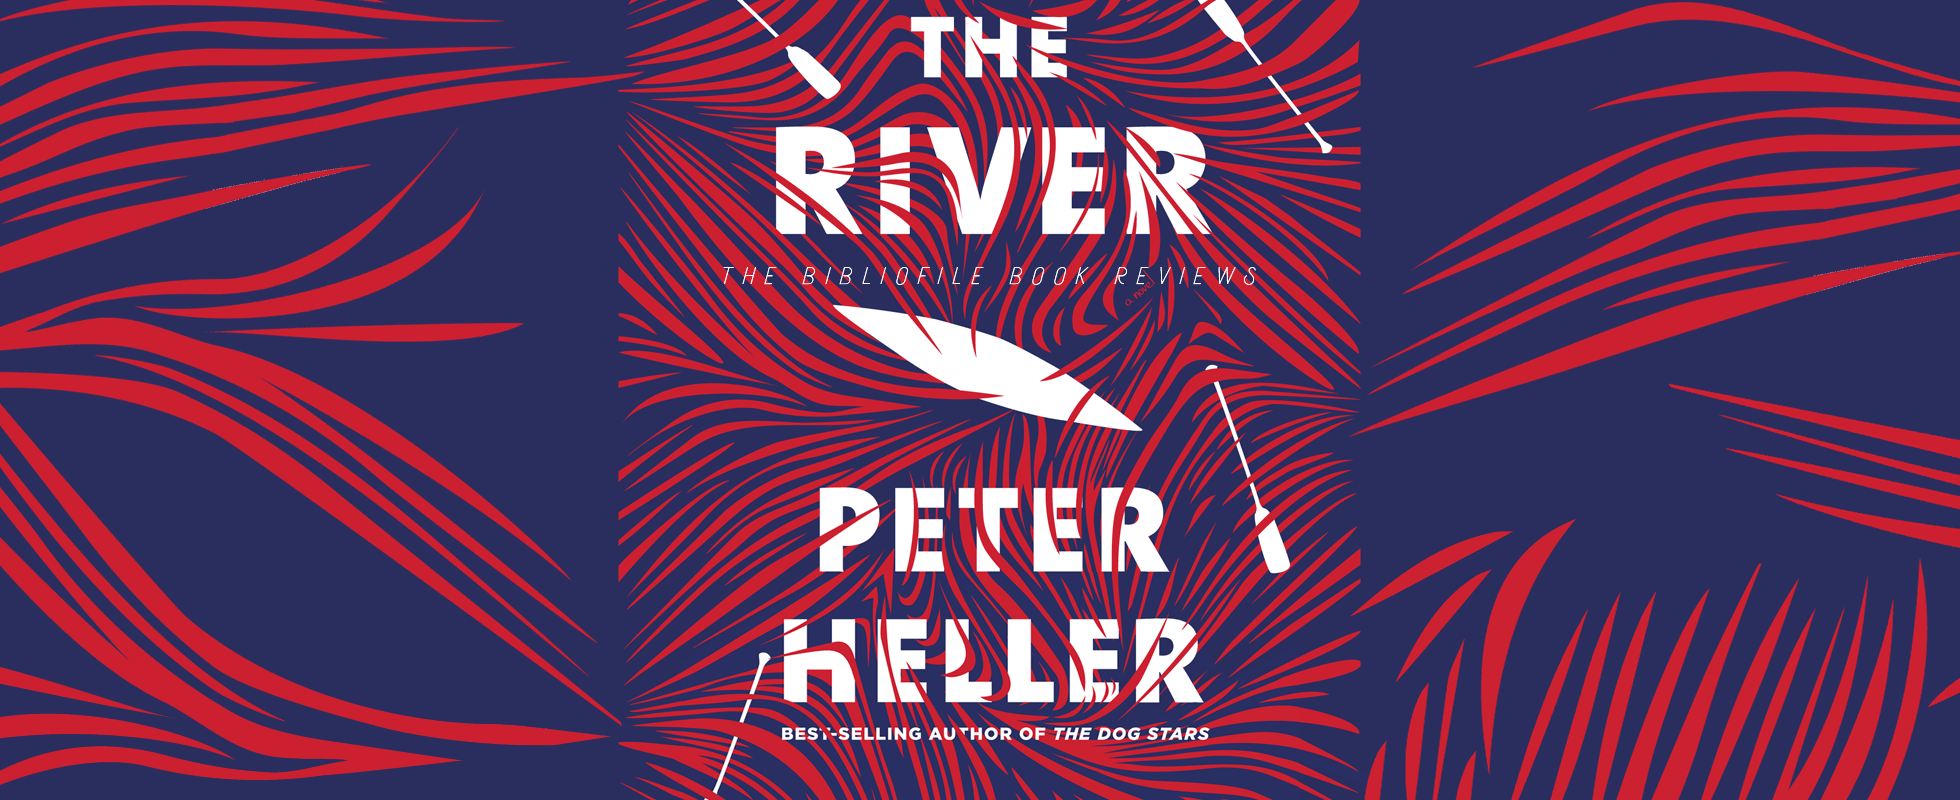 the river peter heller review summary